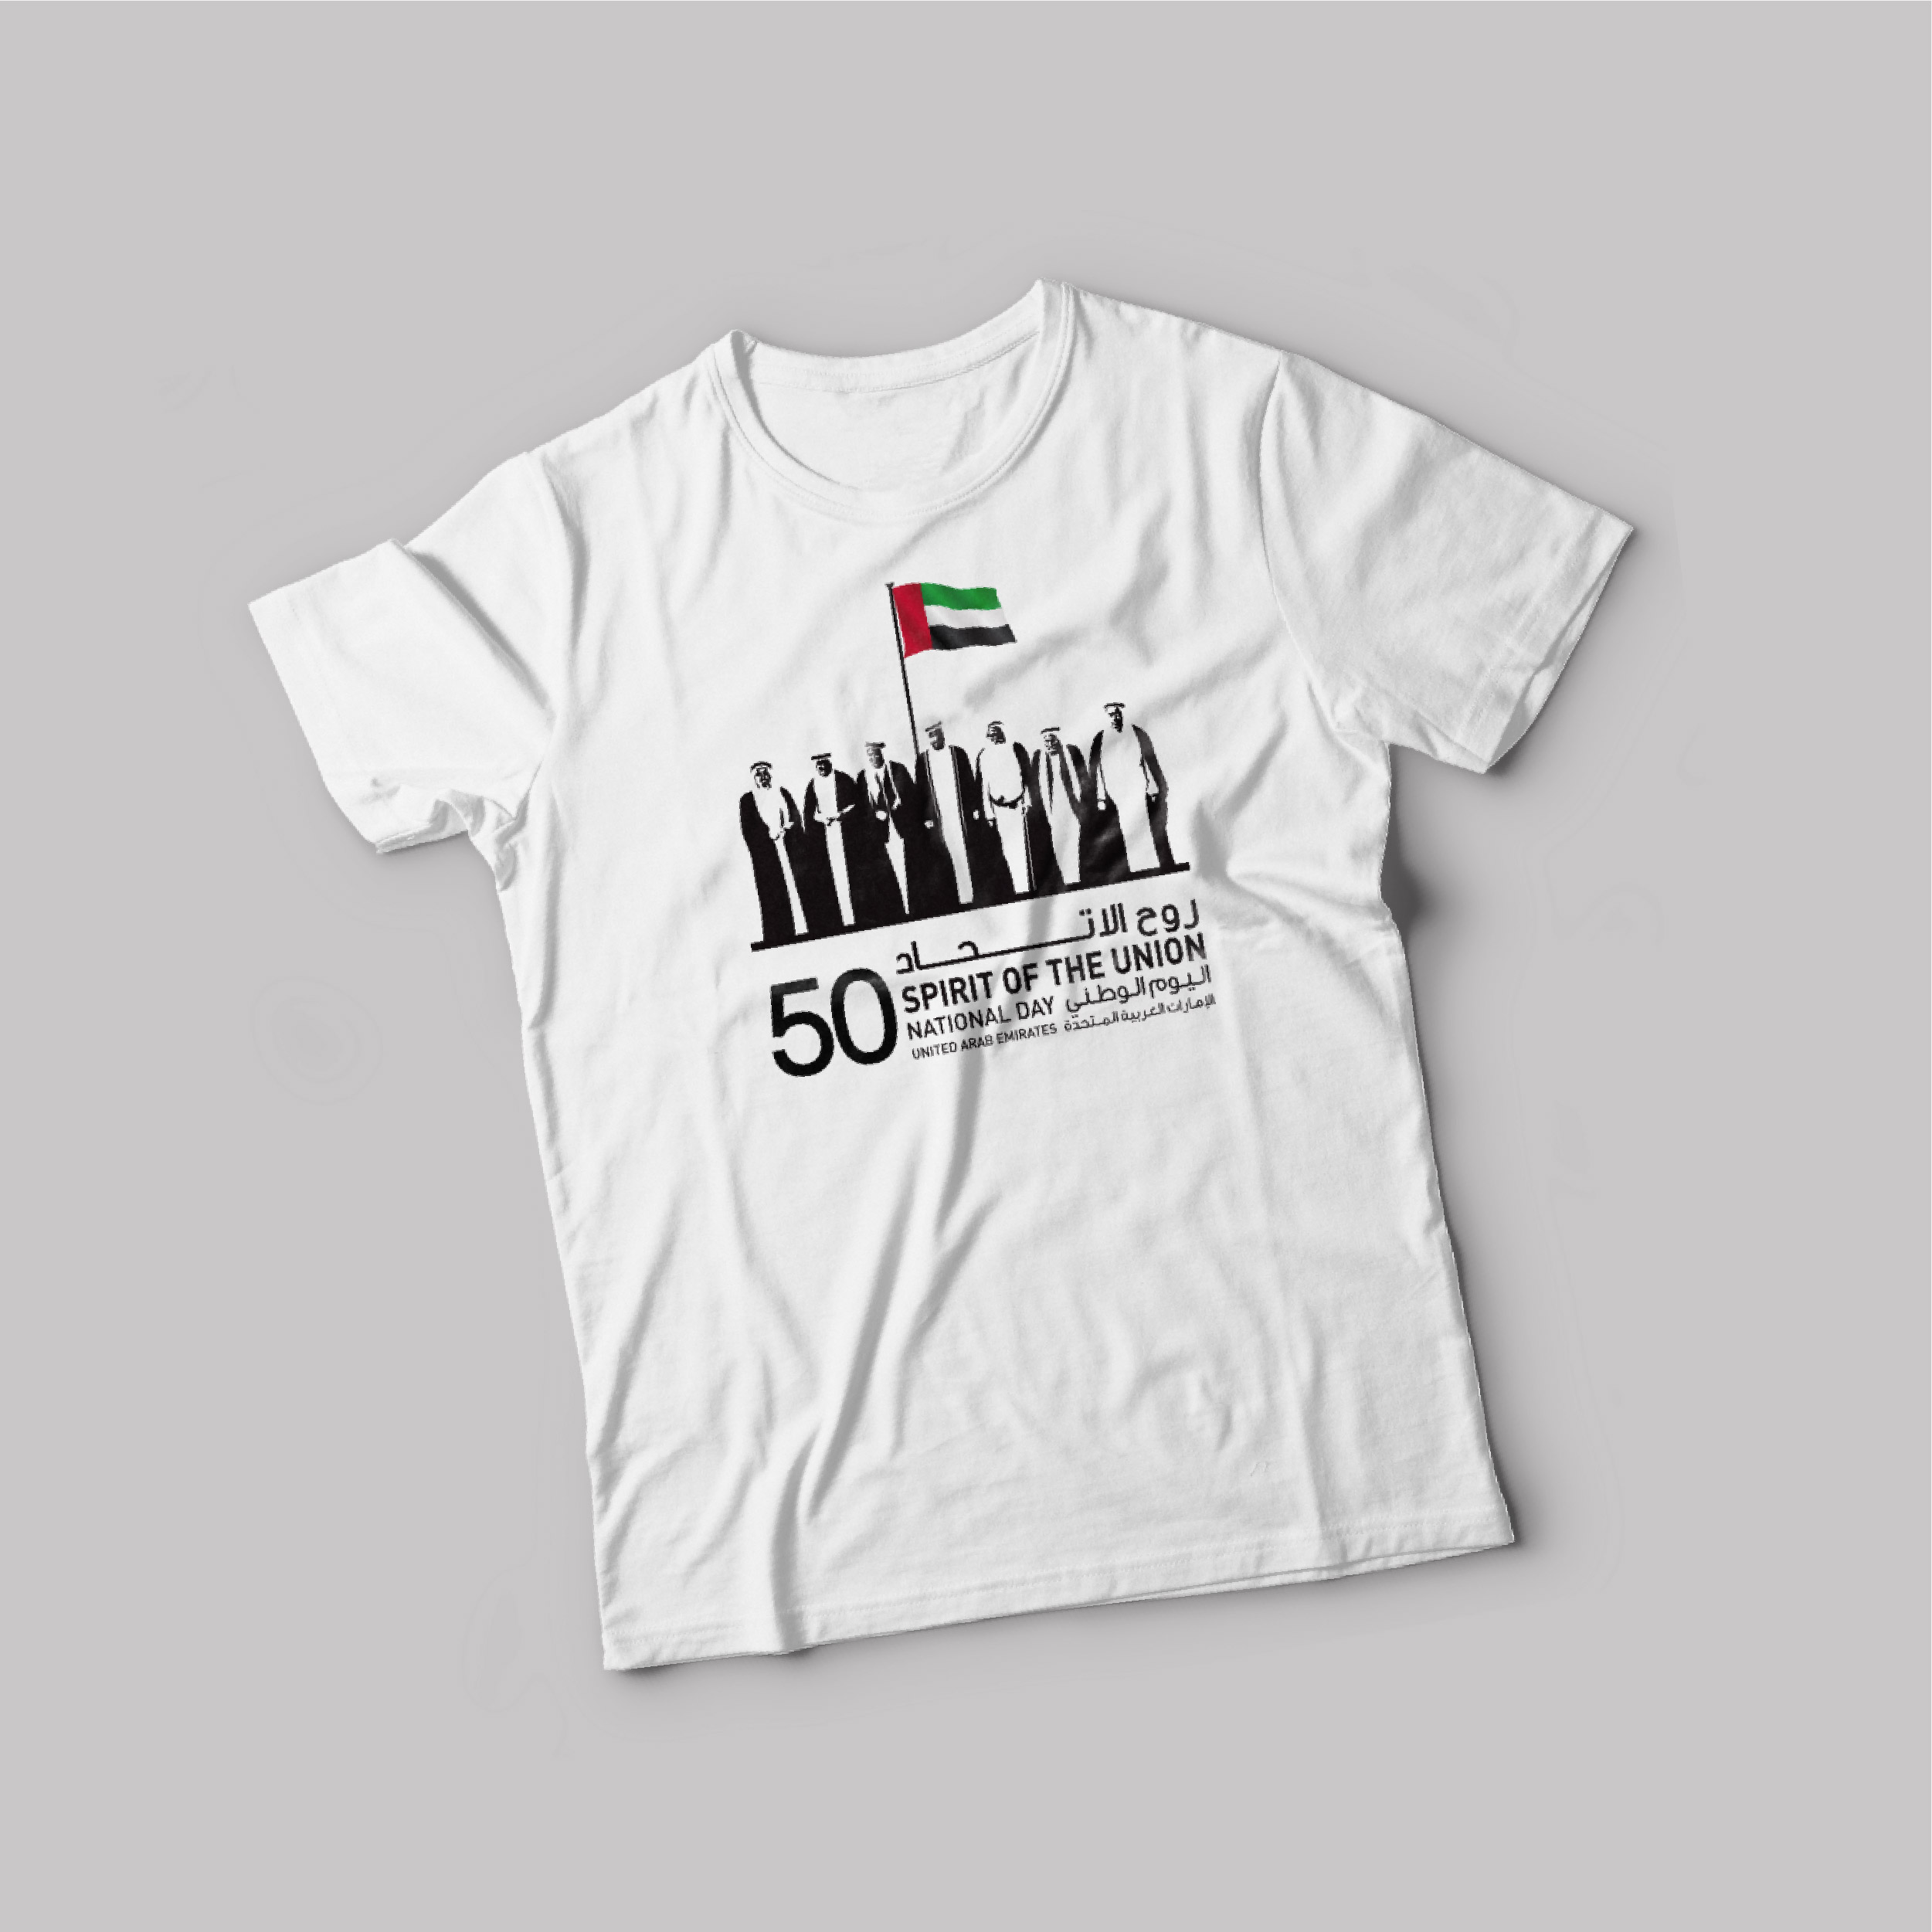 UAE National day T-Shirt White Round Neck For Unisex 50 Year with Kings